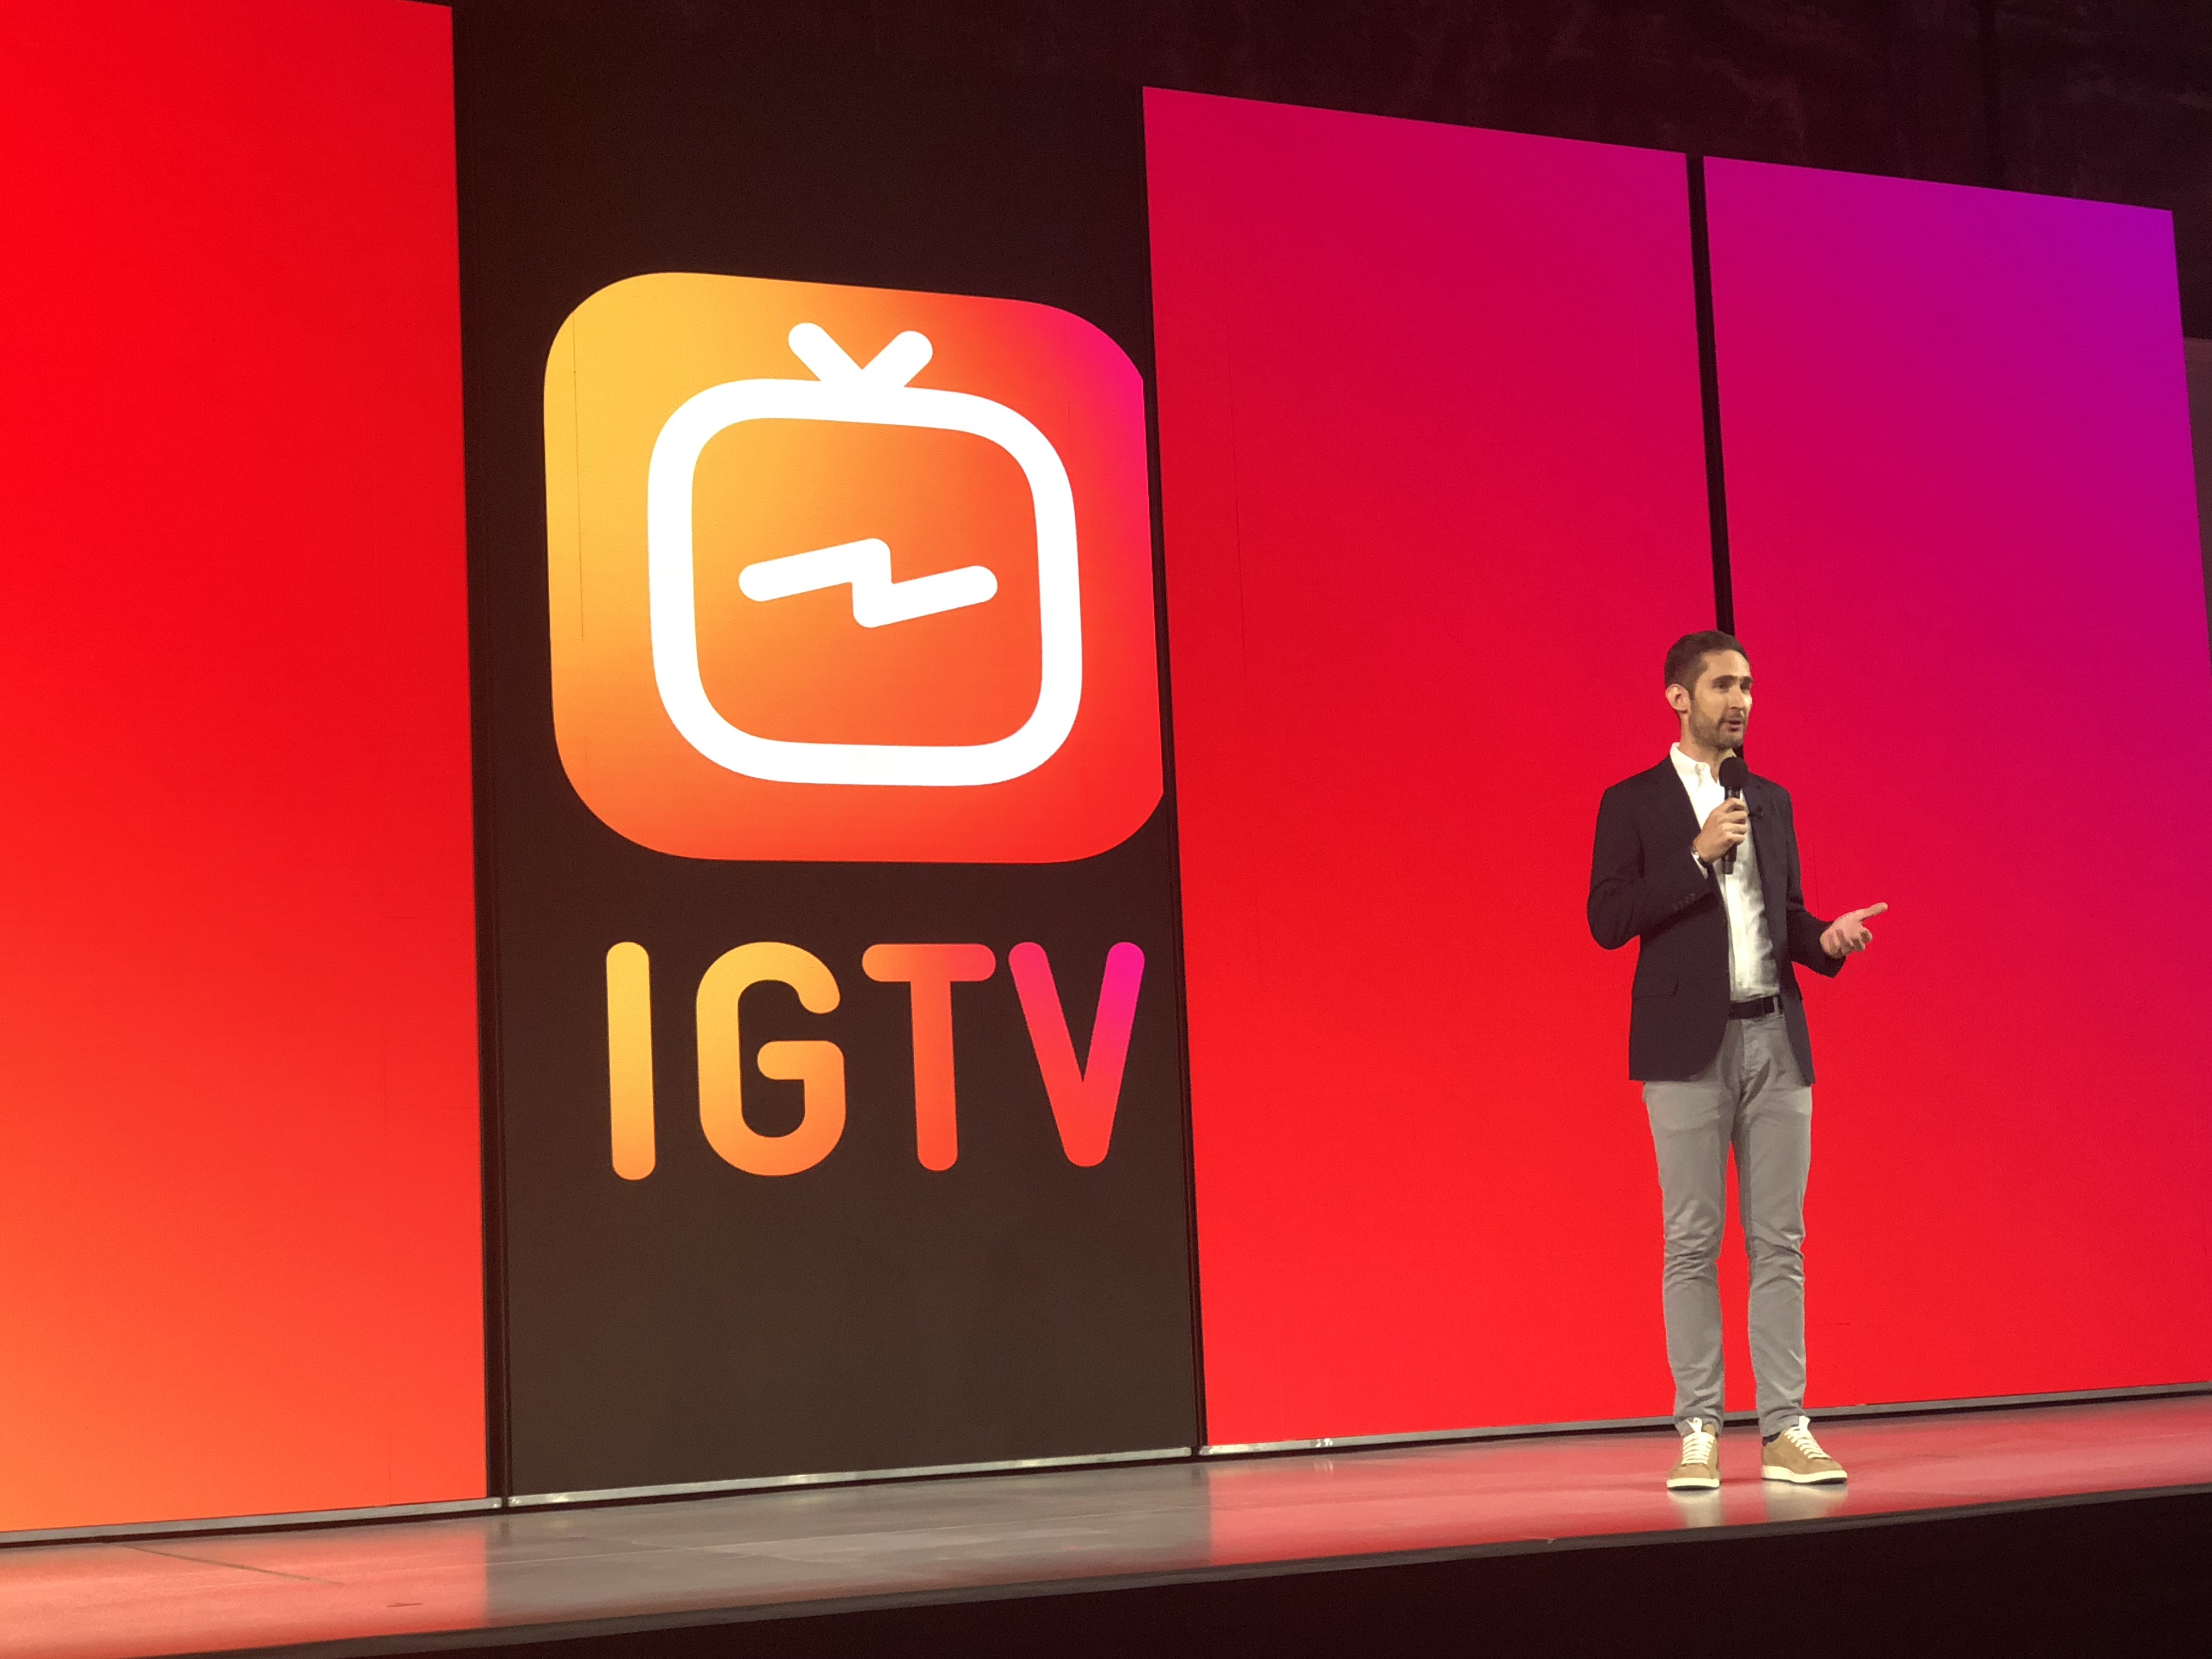 Instagram launches IGTV which can host content an hour long